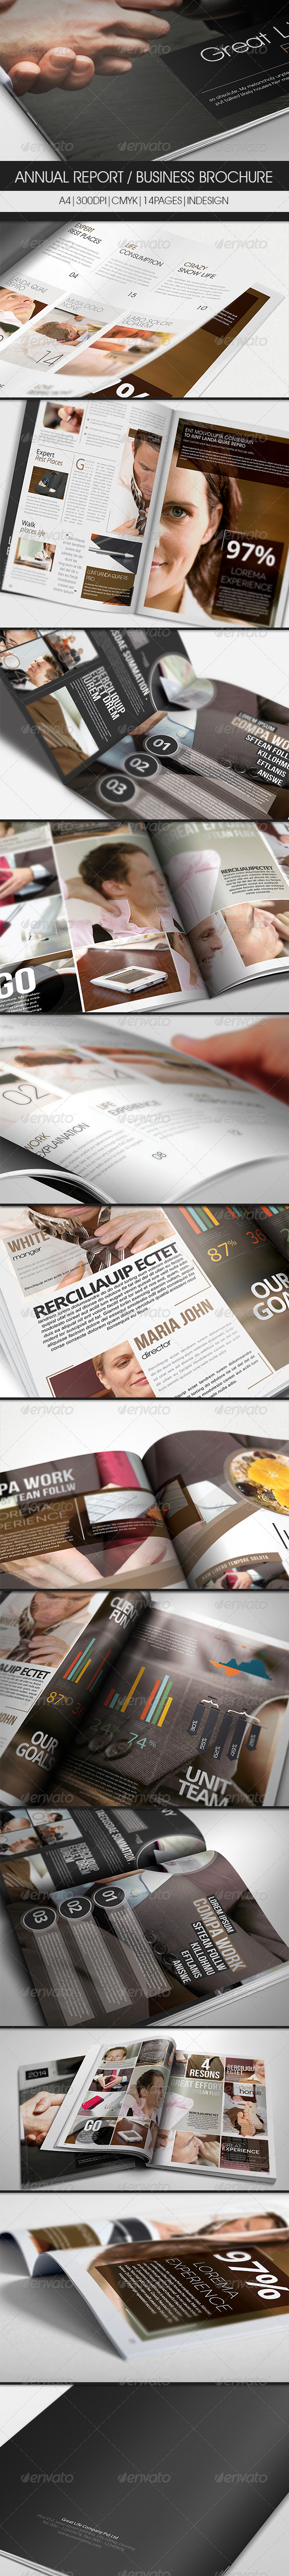 GraphicRiver Annual Report Business Brochure 2979251